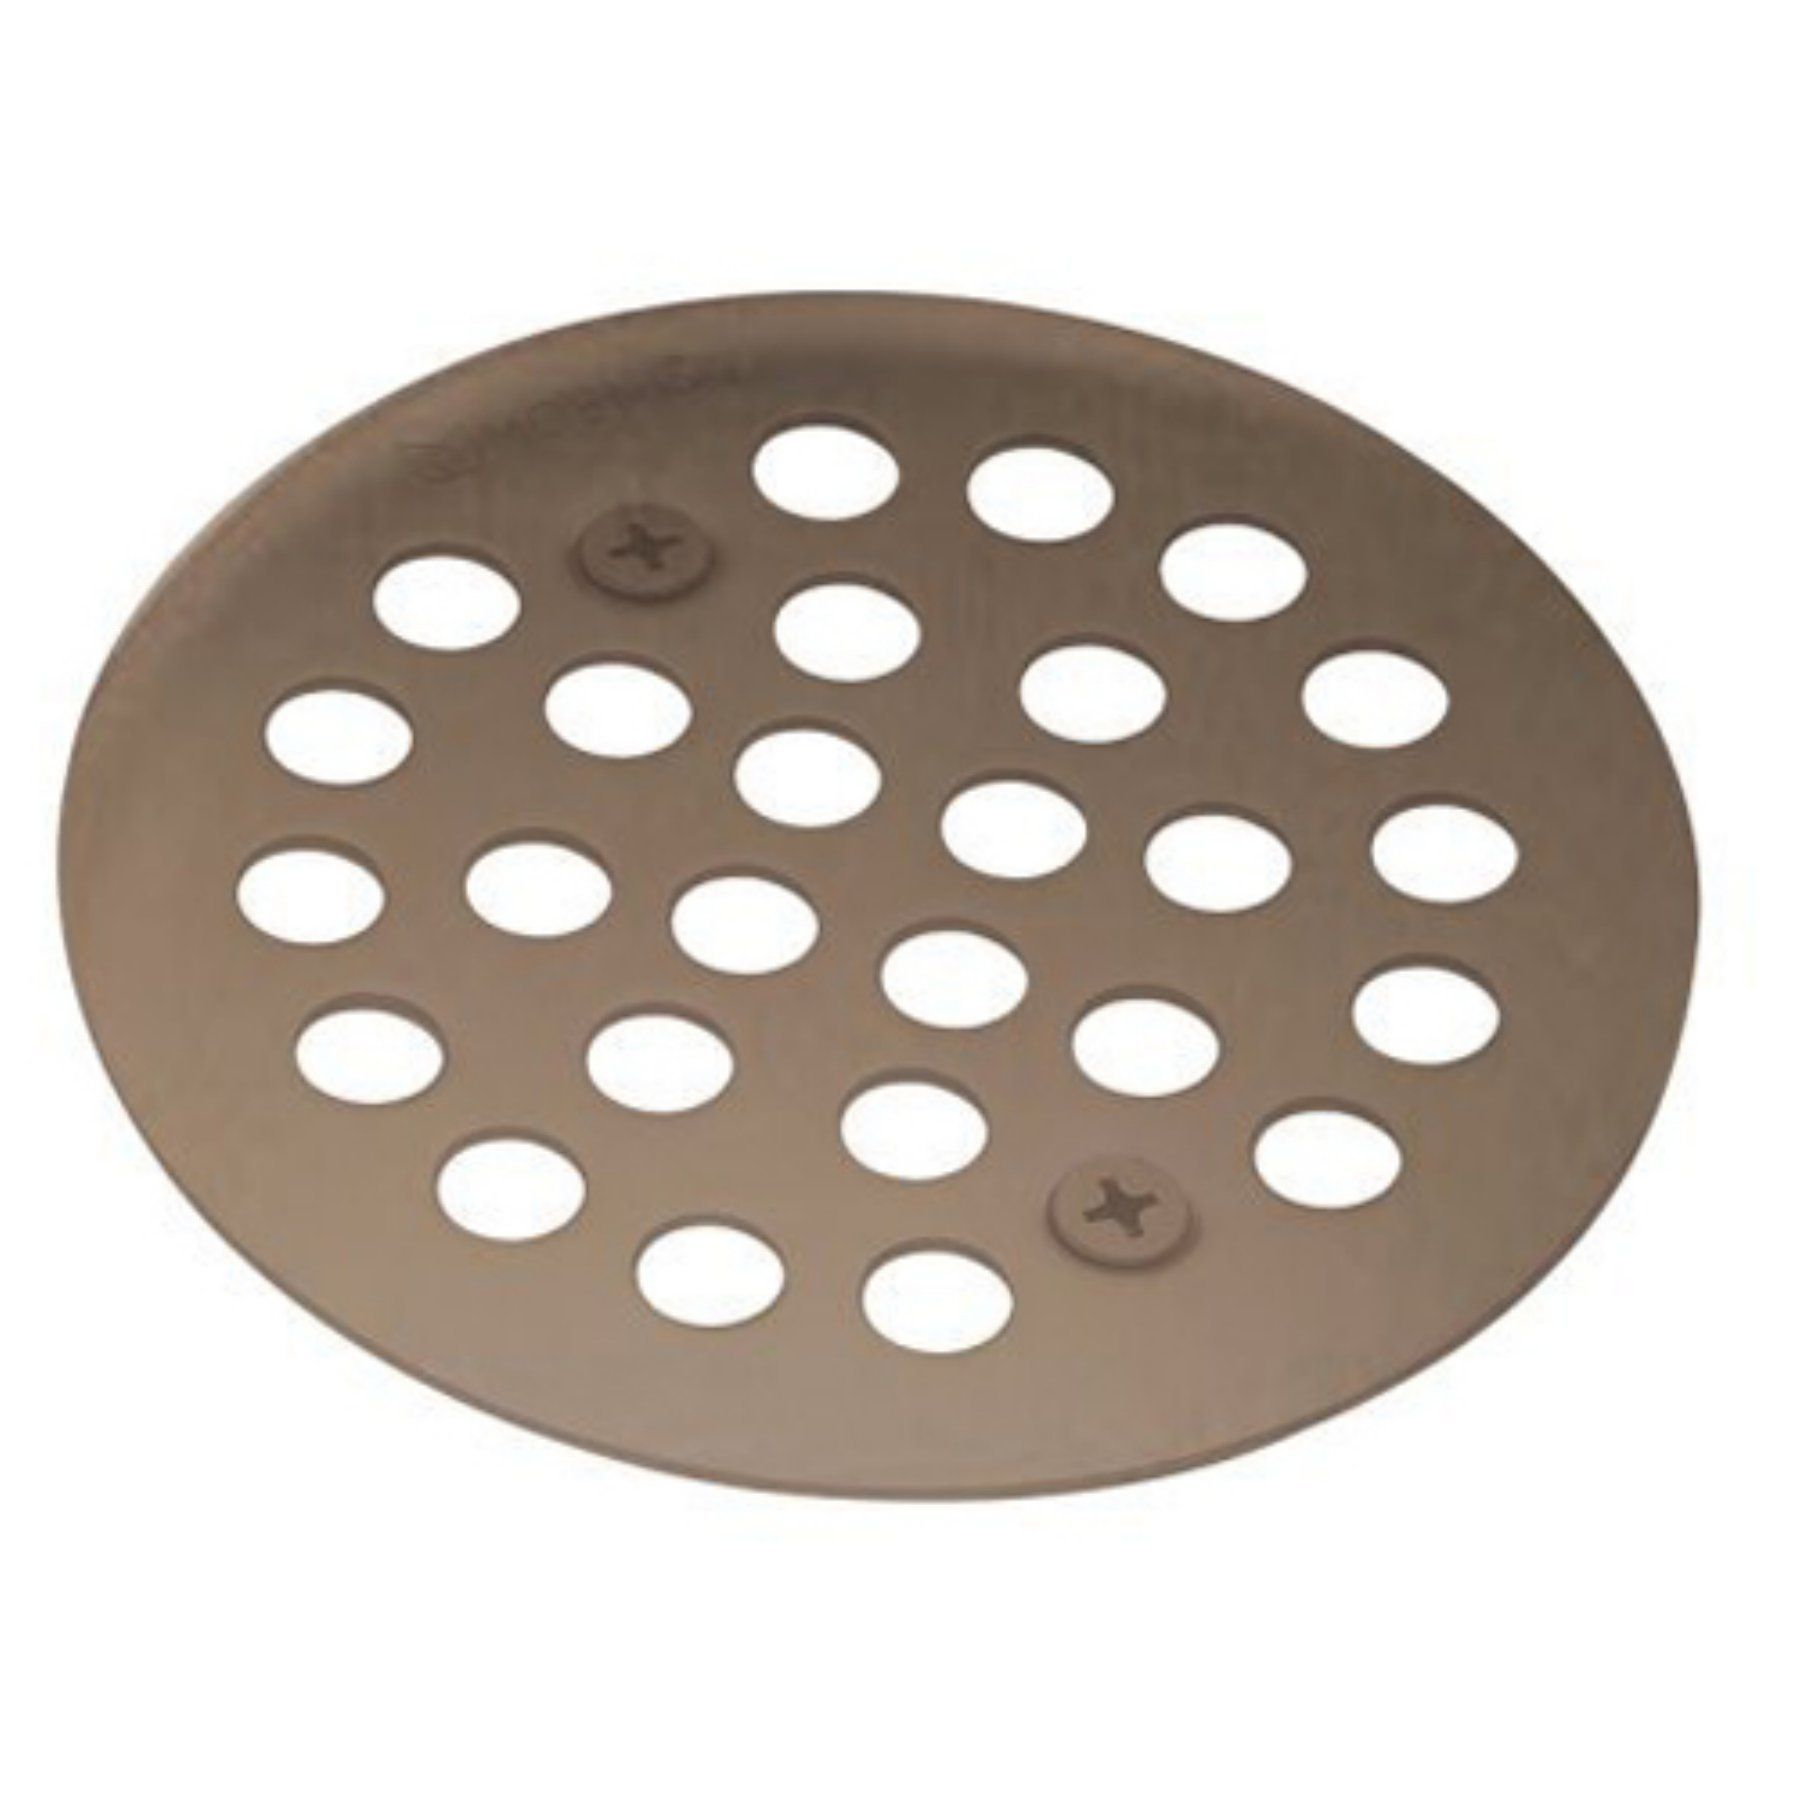 Moen Kingsley Oil Rubbed Bronze Tub Shower Drain Covers